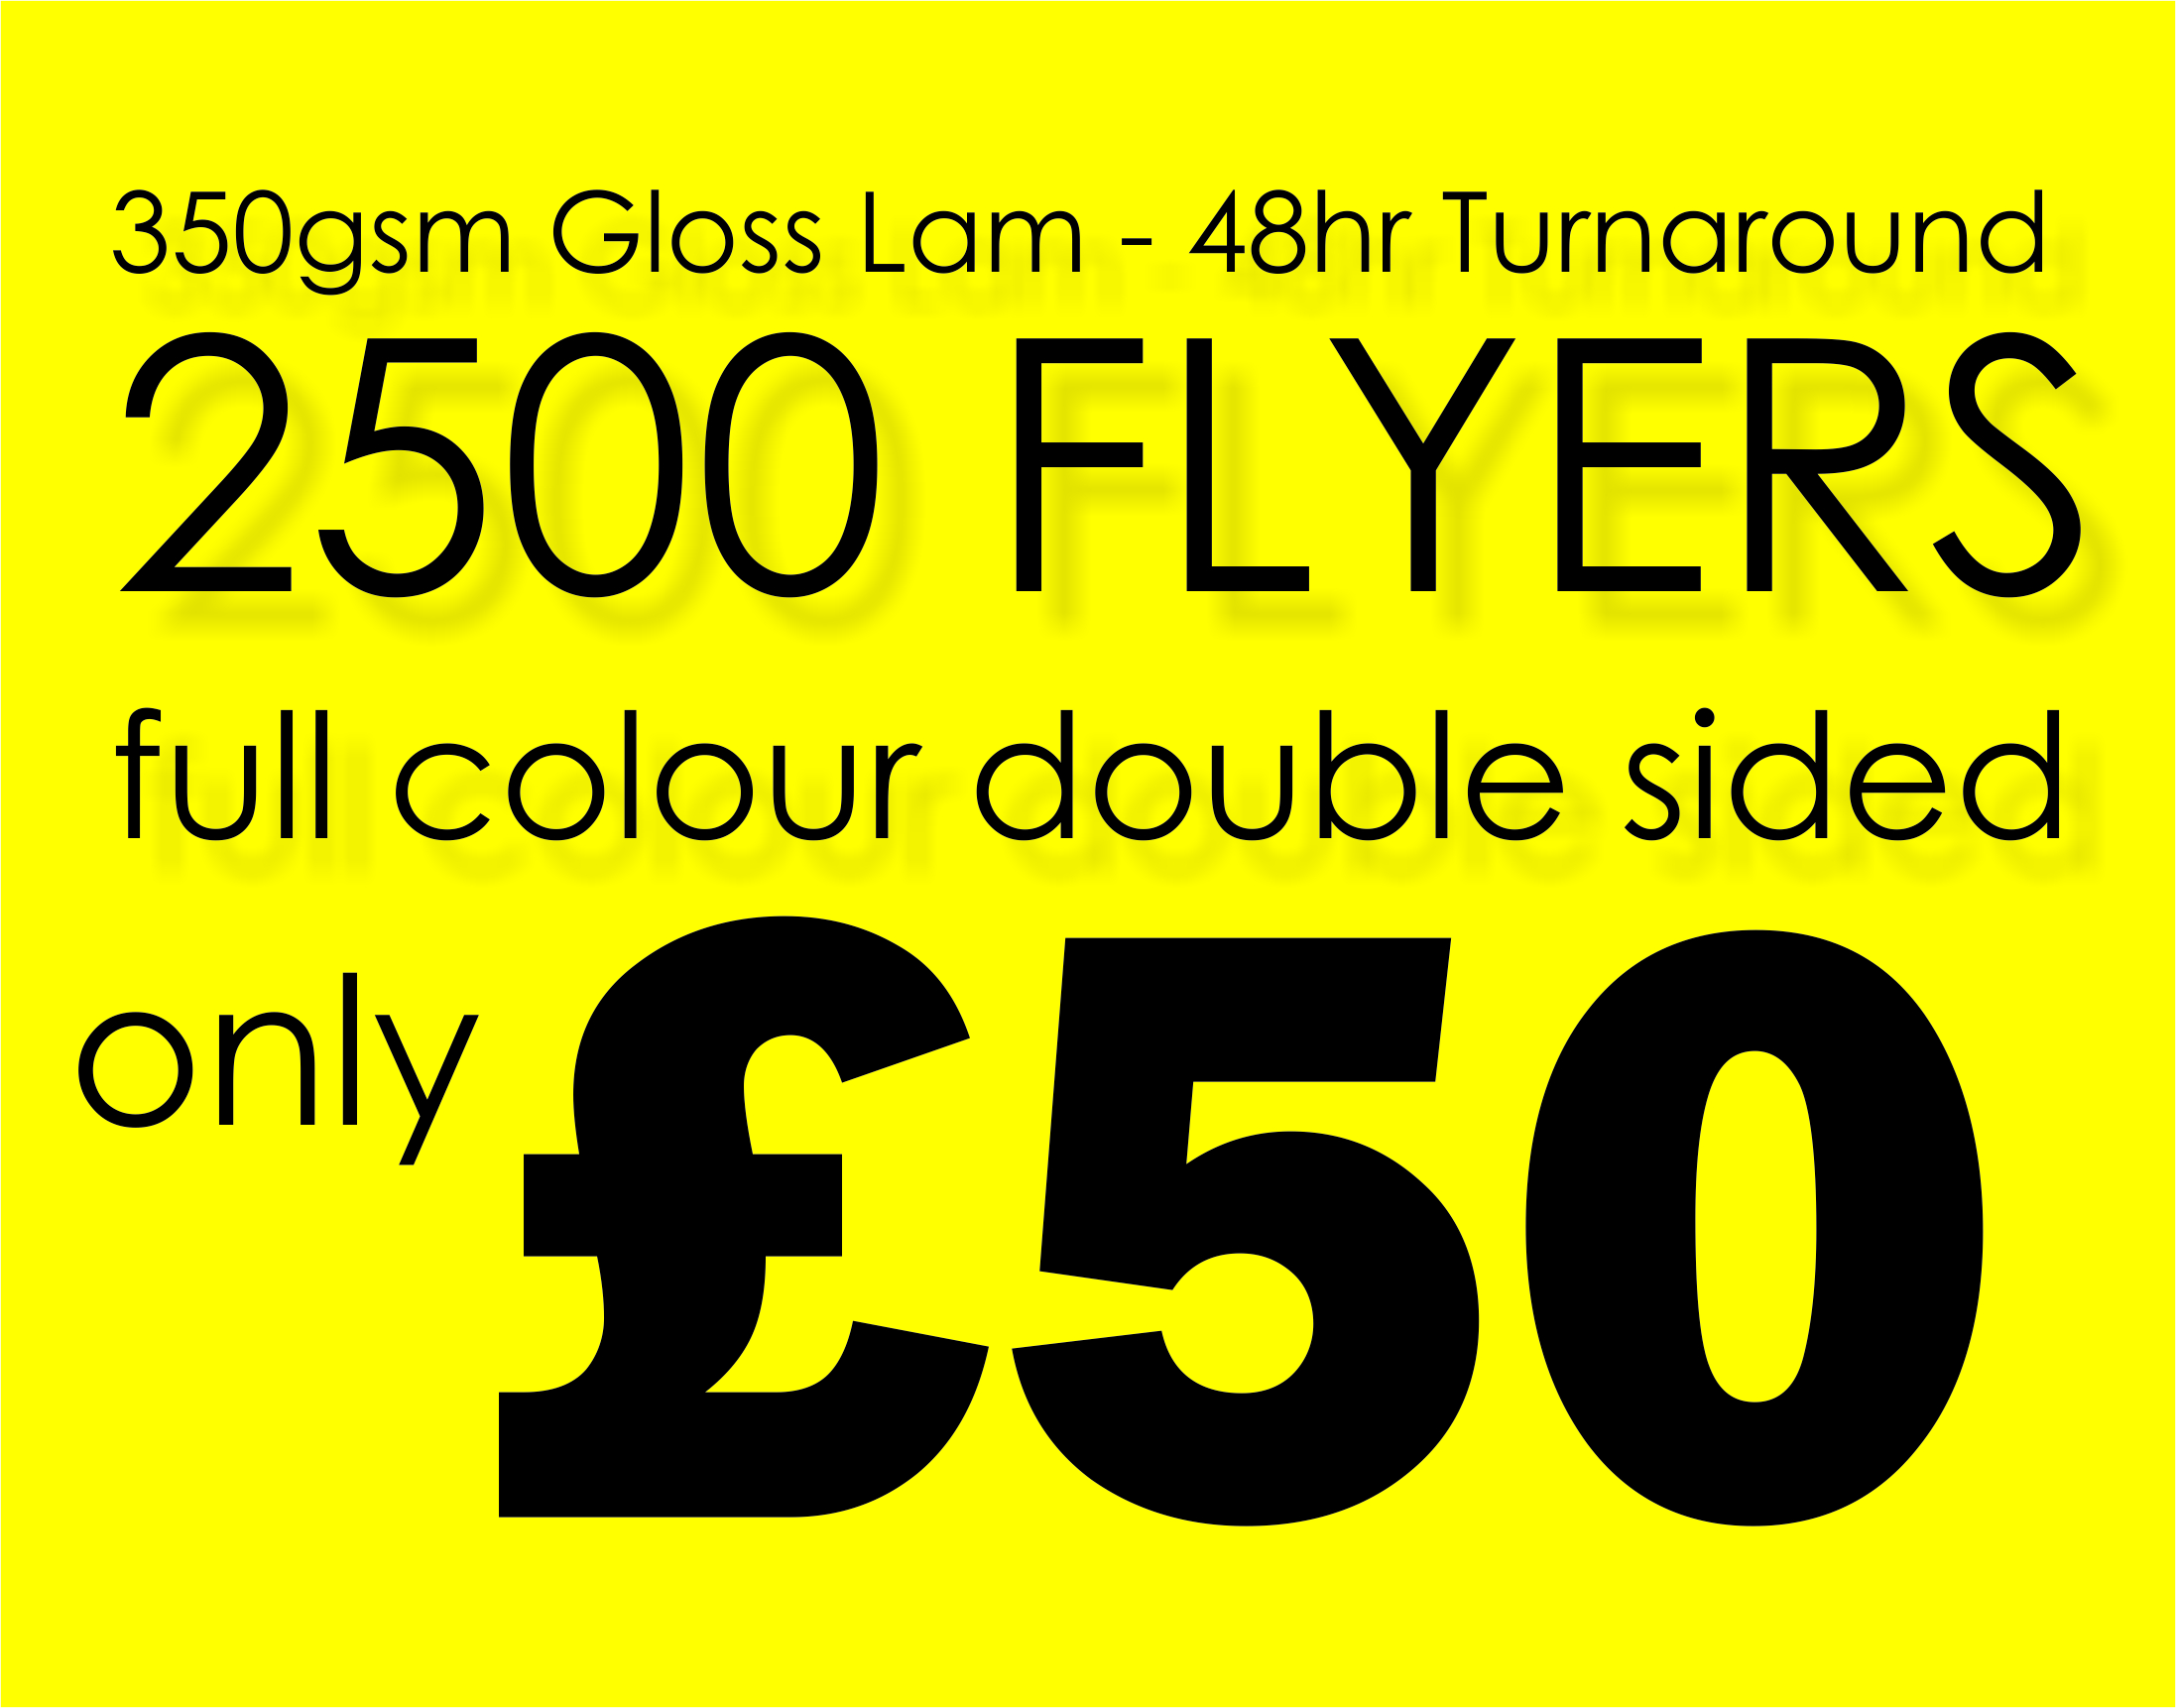 2500 A6 Gloss Laminated Flyers for only £50